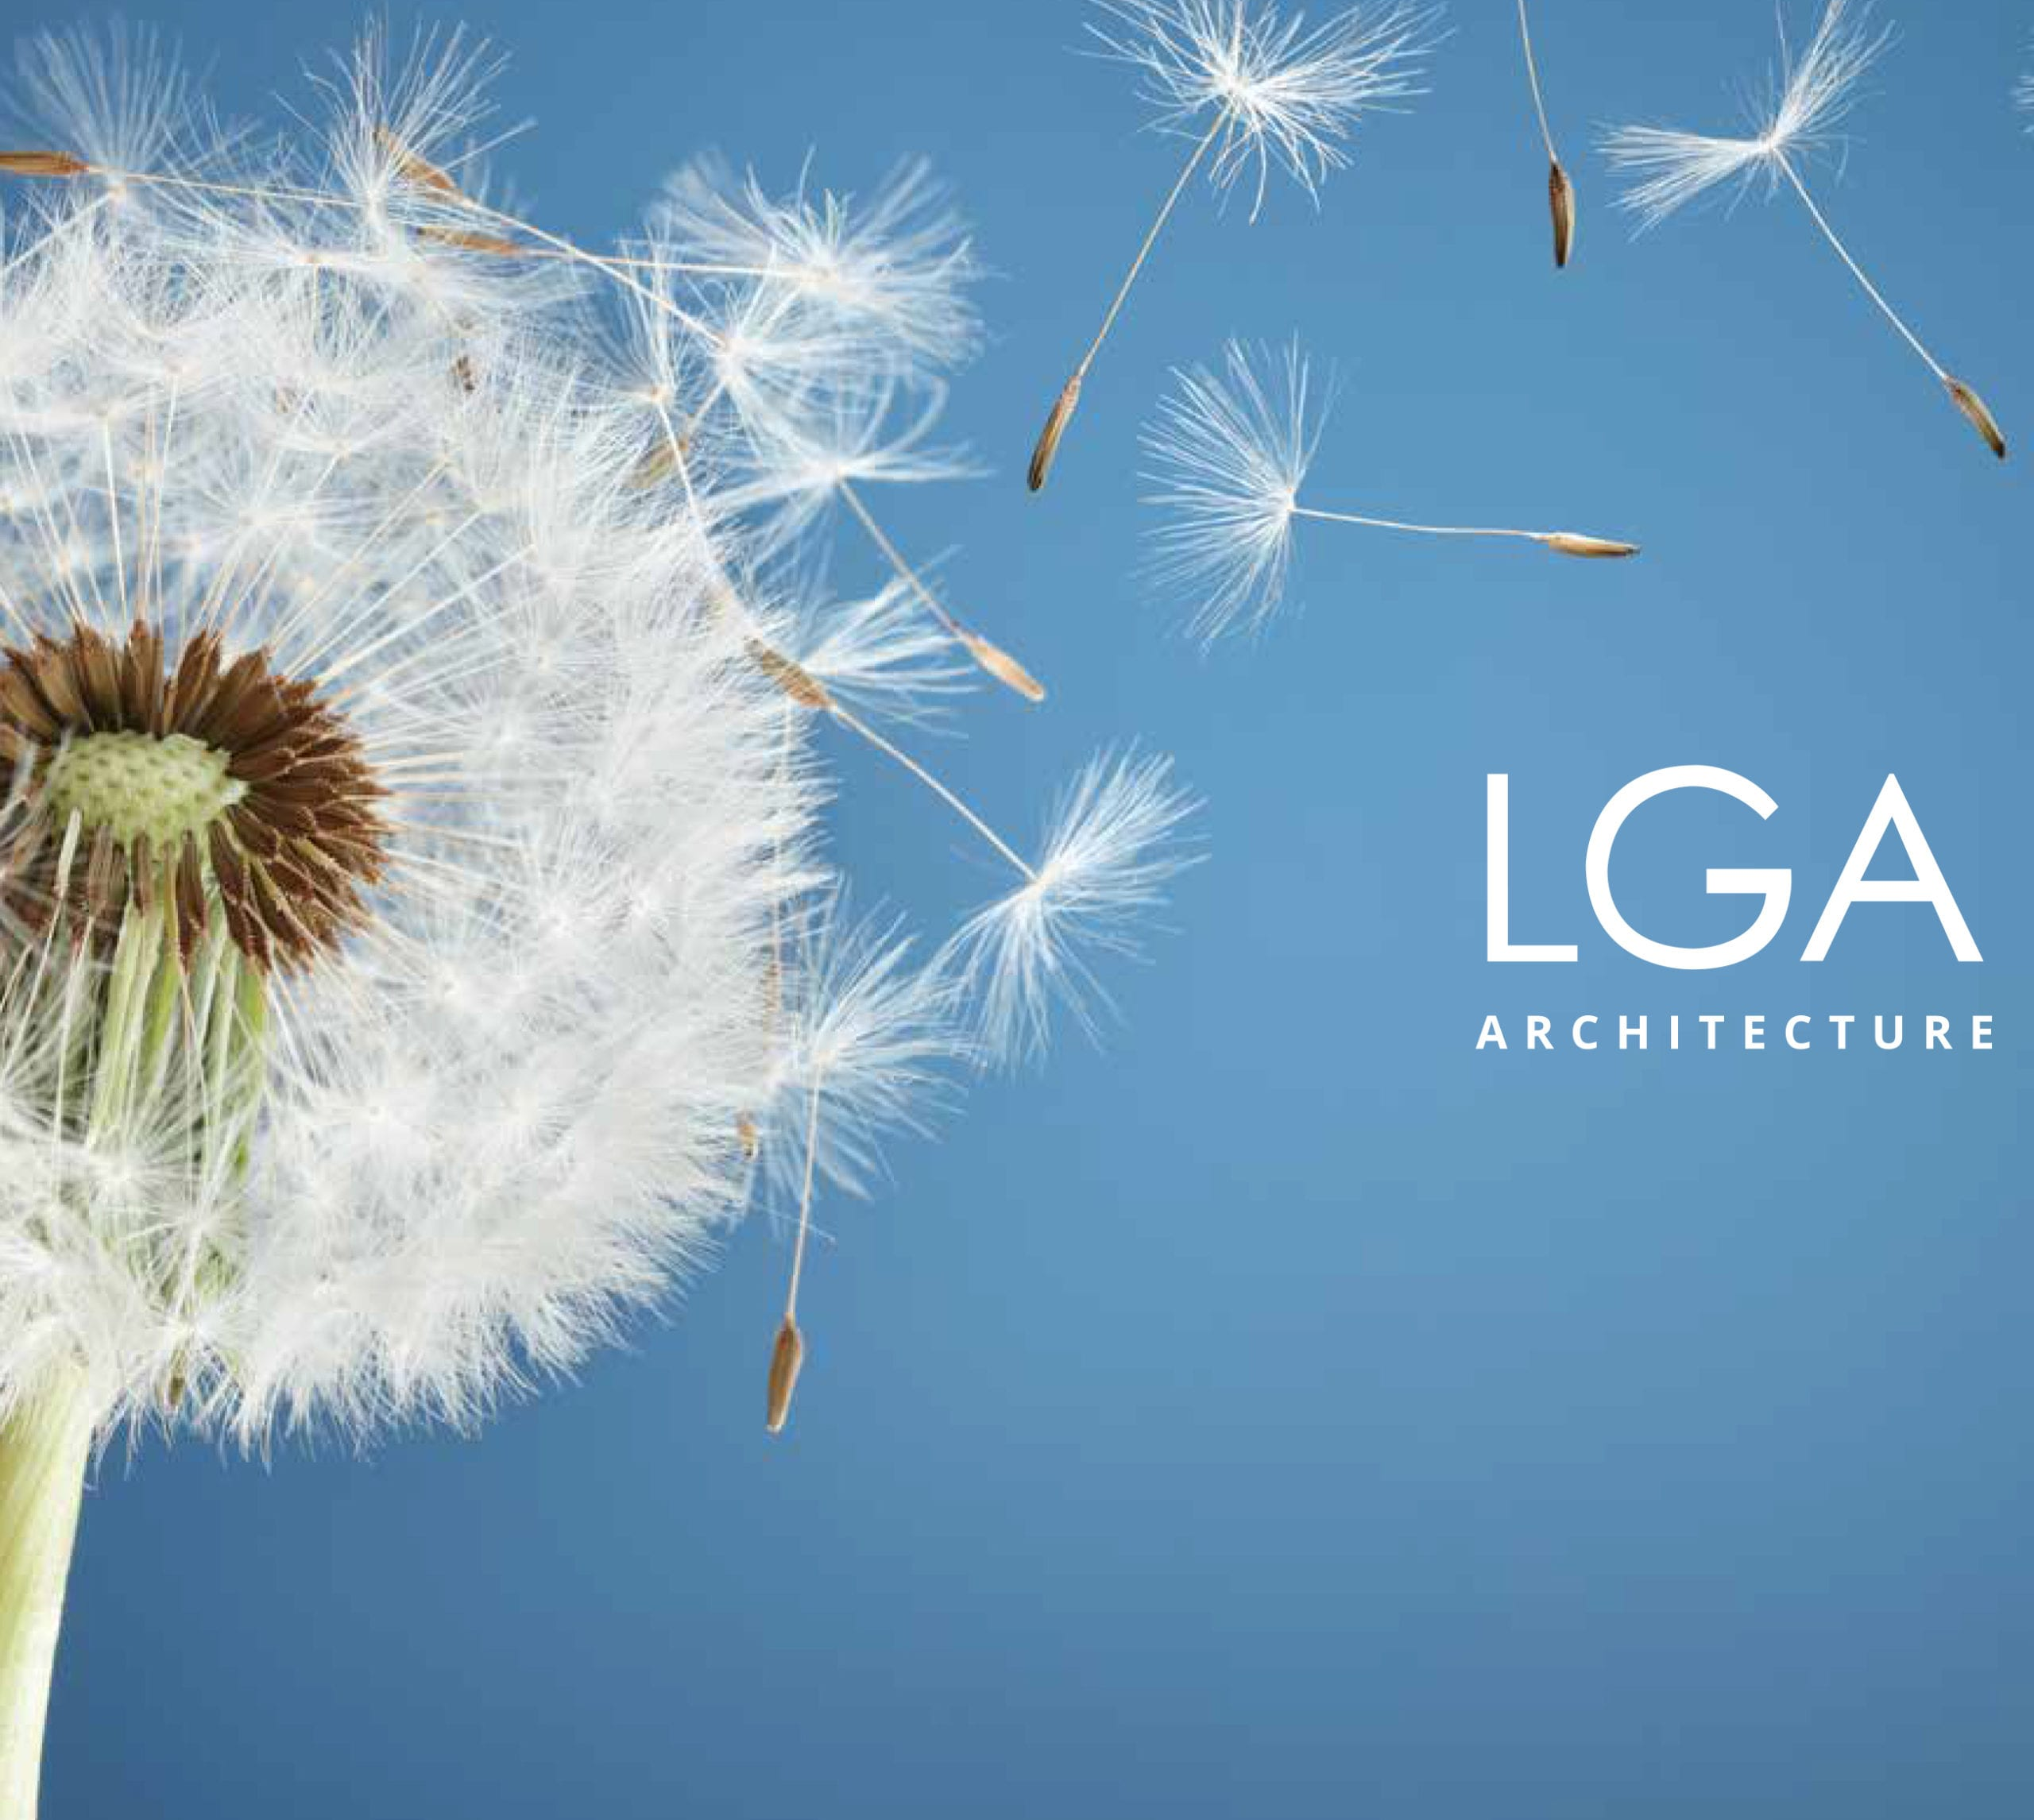 LGA Architecture brochure, designed by Canyon Creative